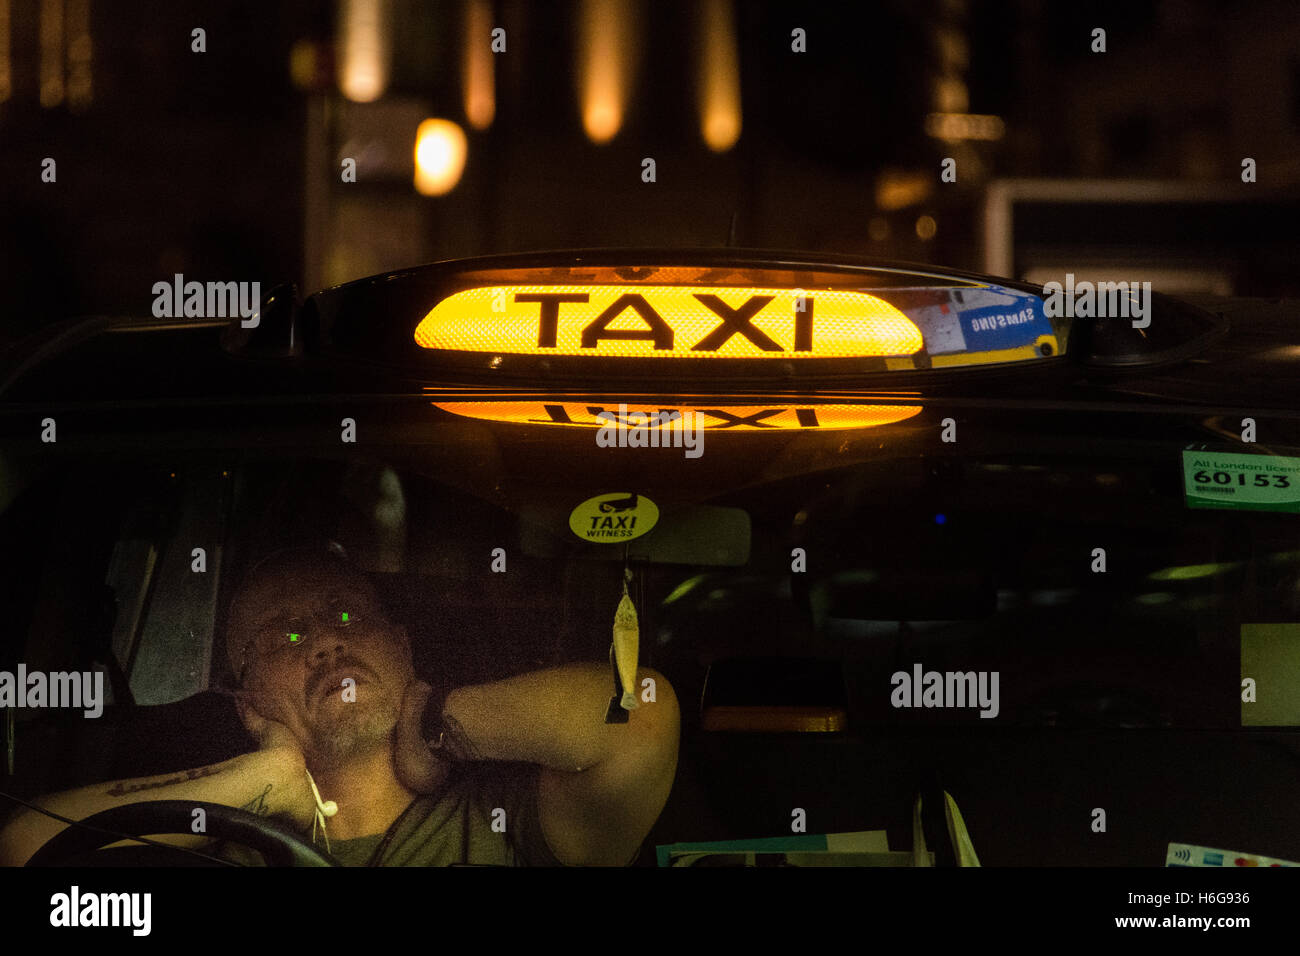 A fatigued black cab taxi driver in London's West End - Stock Image